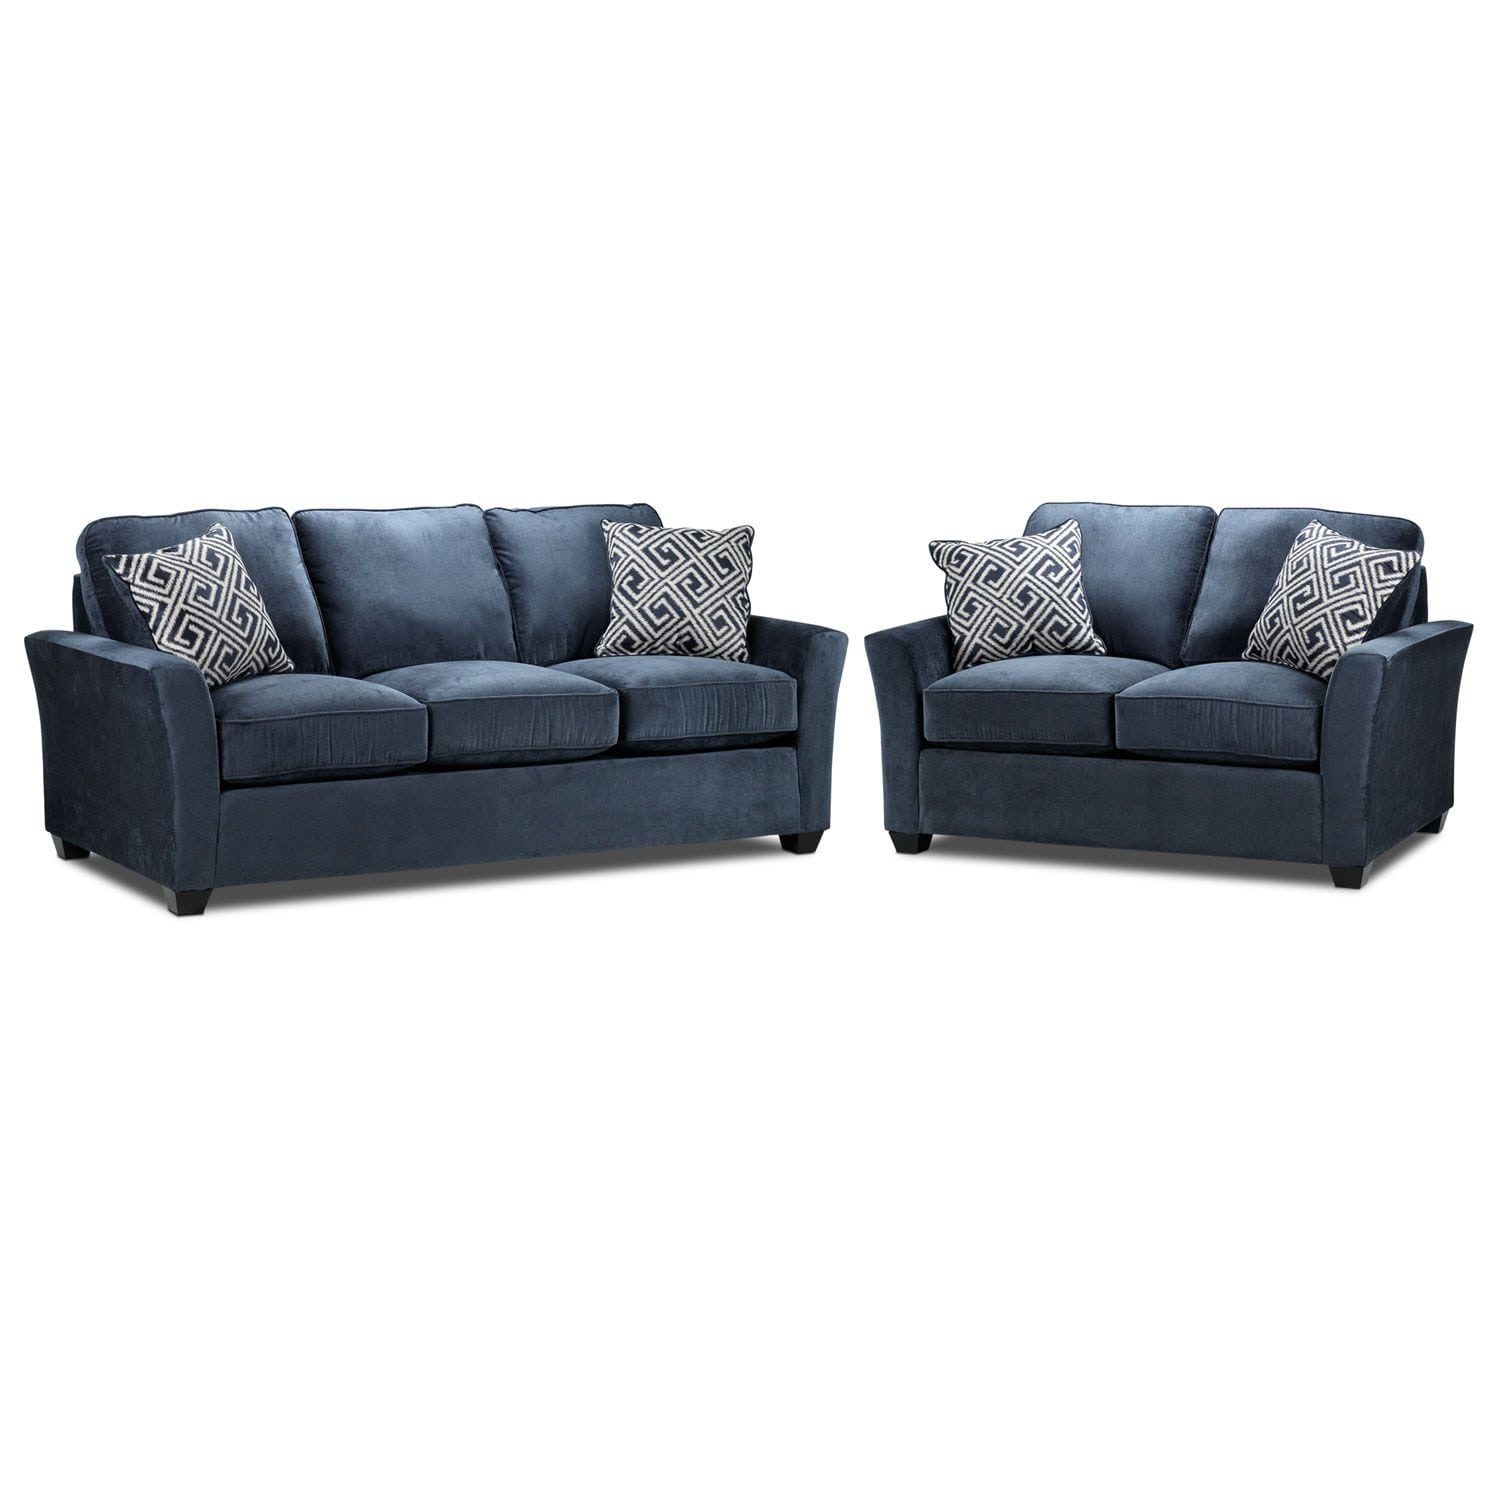 Living Room Furniture - Adalyn Sofa and Loveseat Package